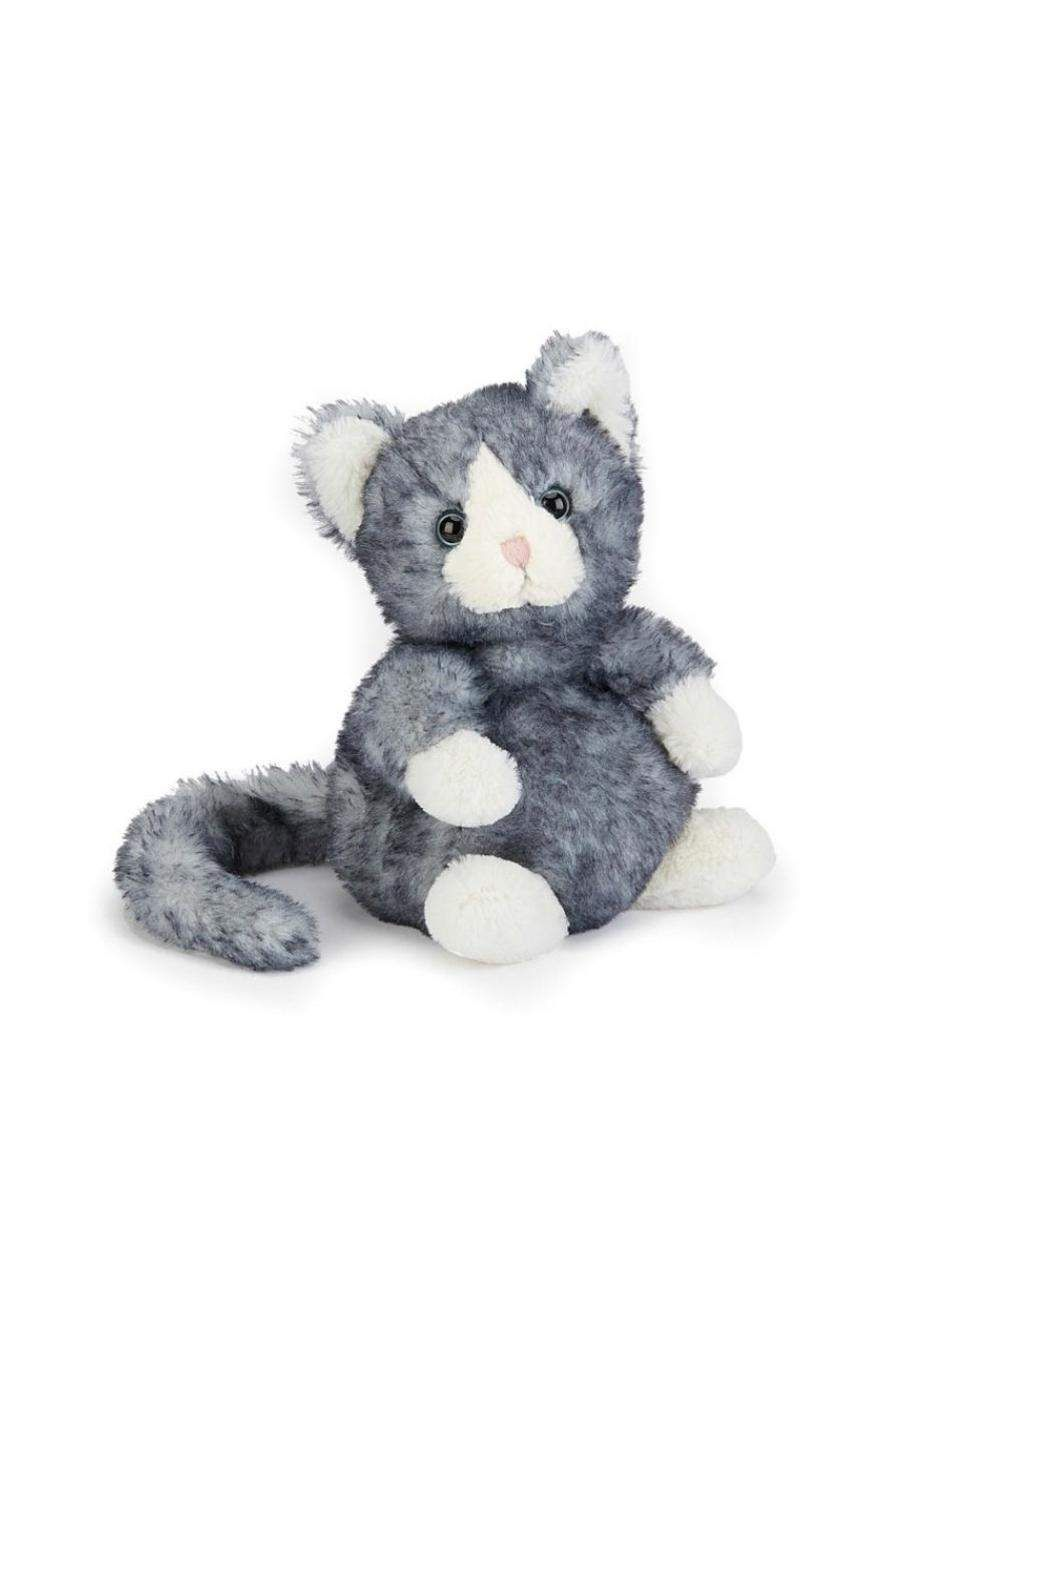 Dolly Mitten Kitten Jellycat Soft Toy Dog Jellycat Toys